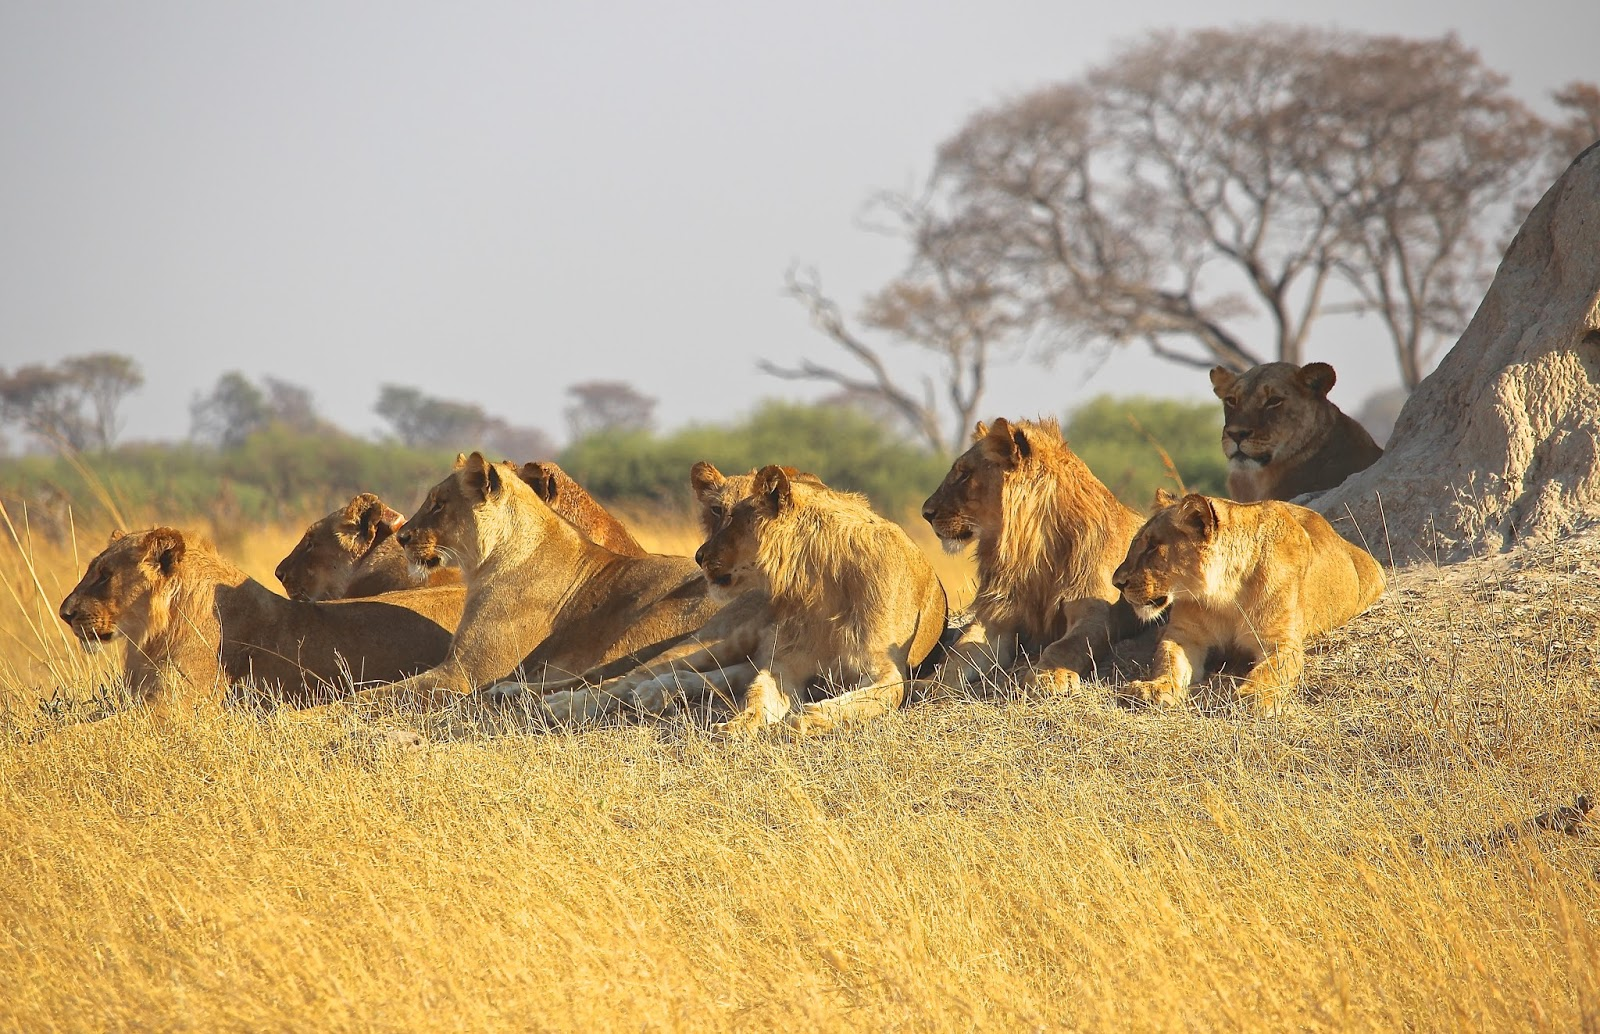 A picture of a pride of lions.